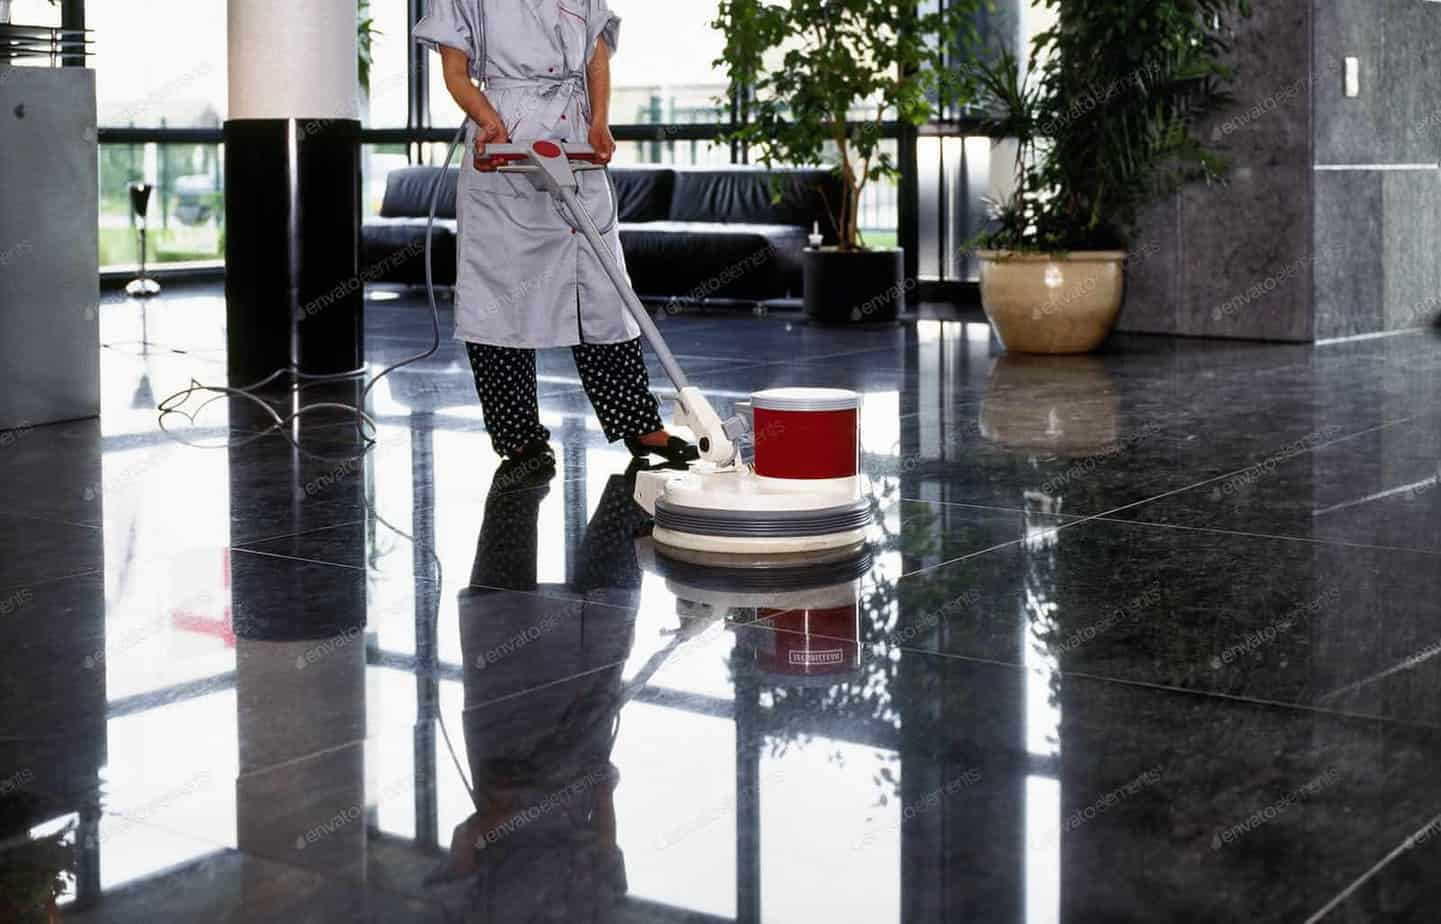 Corridor Cleaning Service